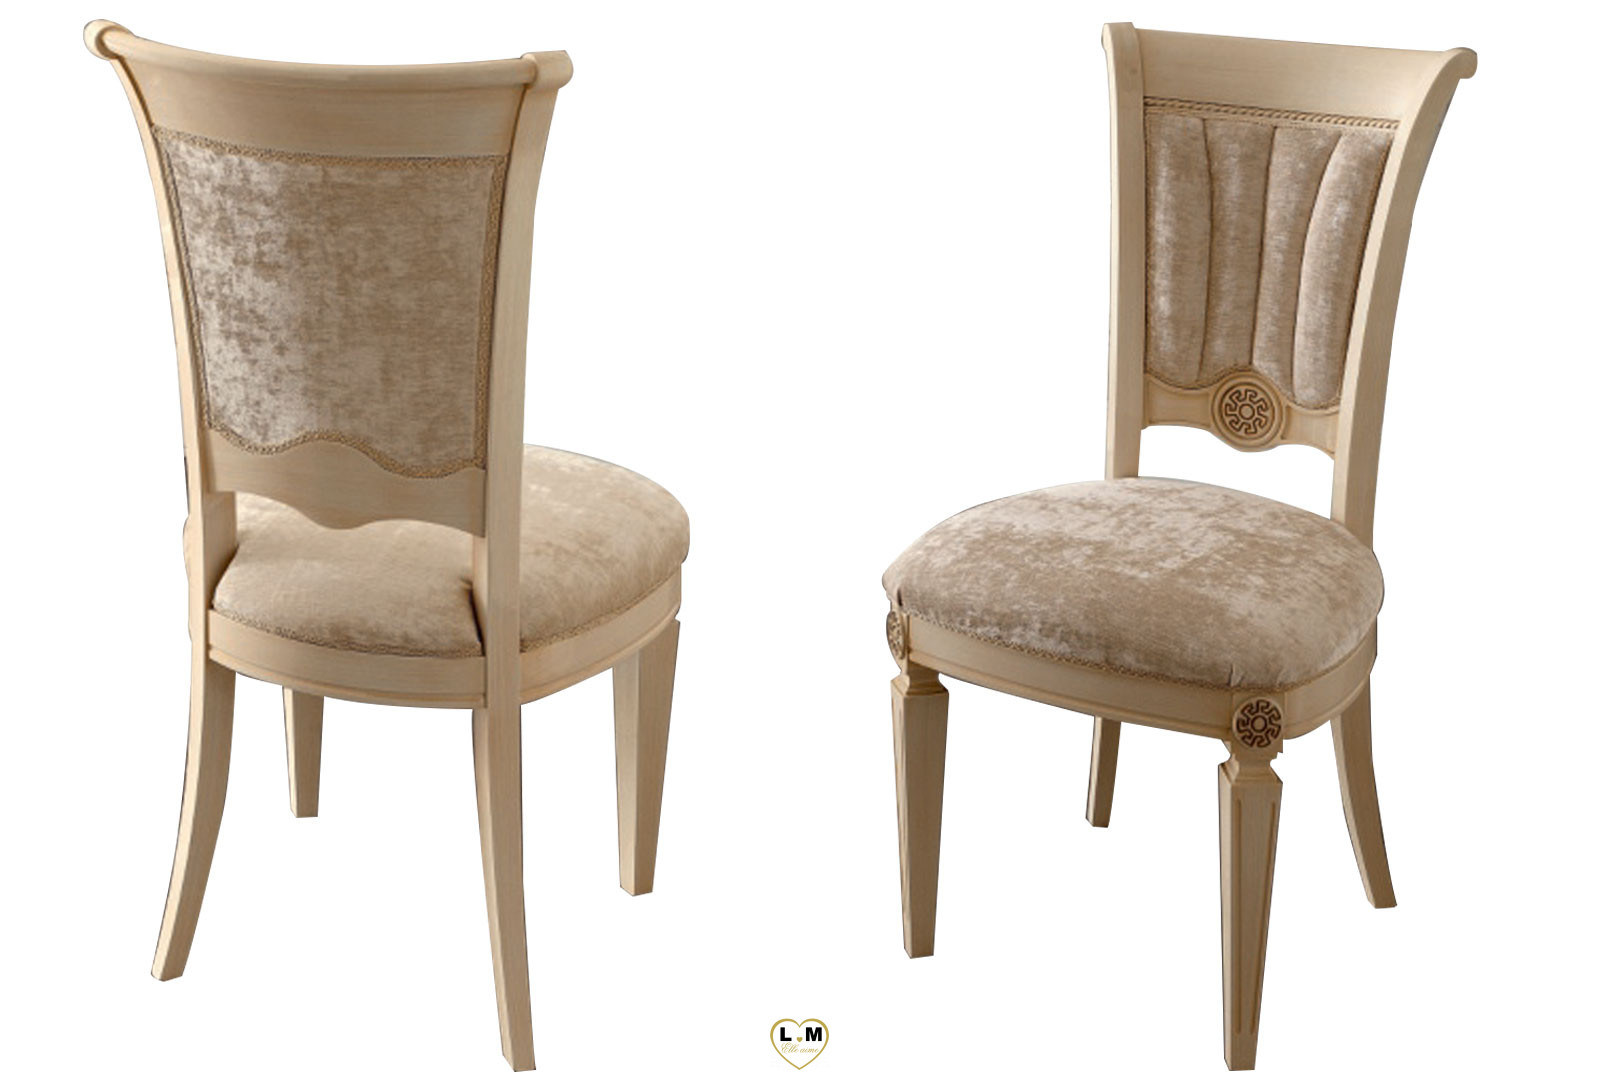 Destockage Chaises Salle A Manger Chaise Salle A Manger Baroque Perfect Conception Salle